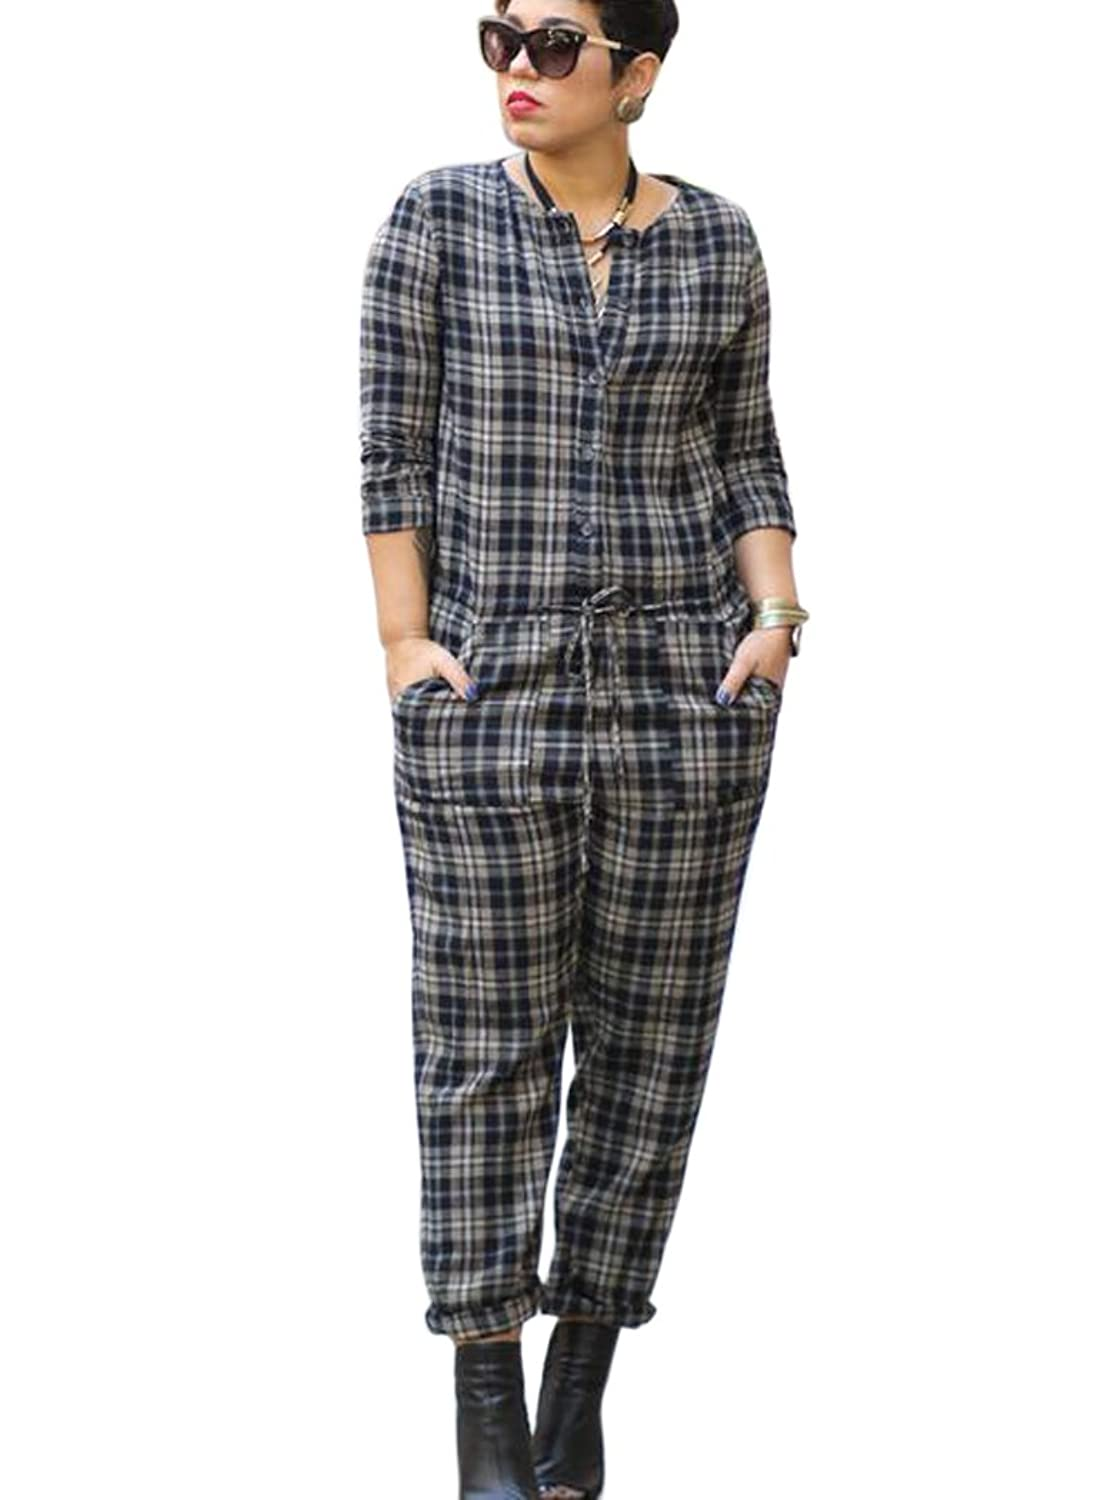 Aro Lora Women's 3/4 Sleeve Henley Button Down Top Plaid Casual Jumpsuits Rompers